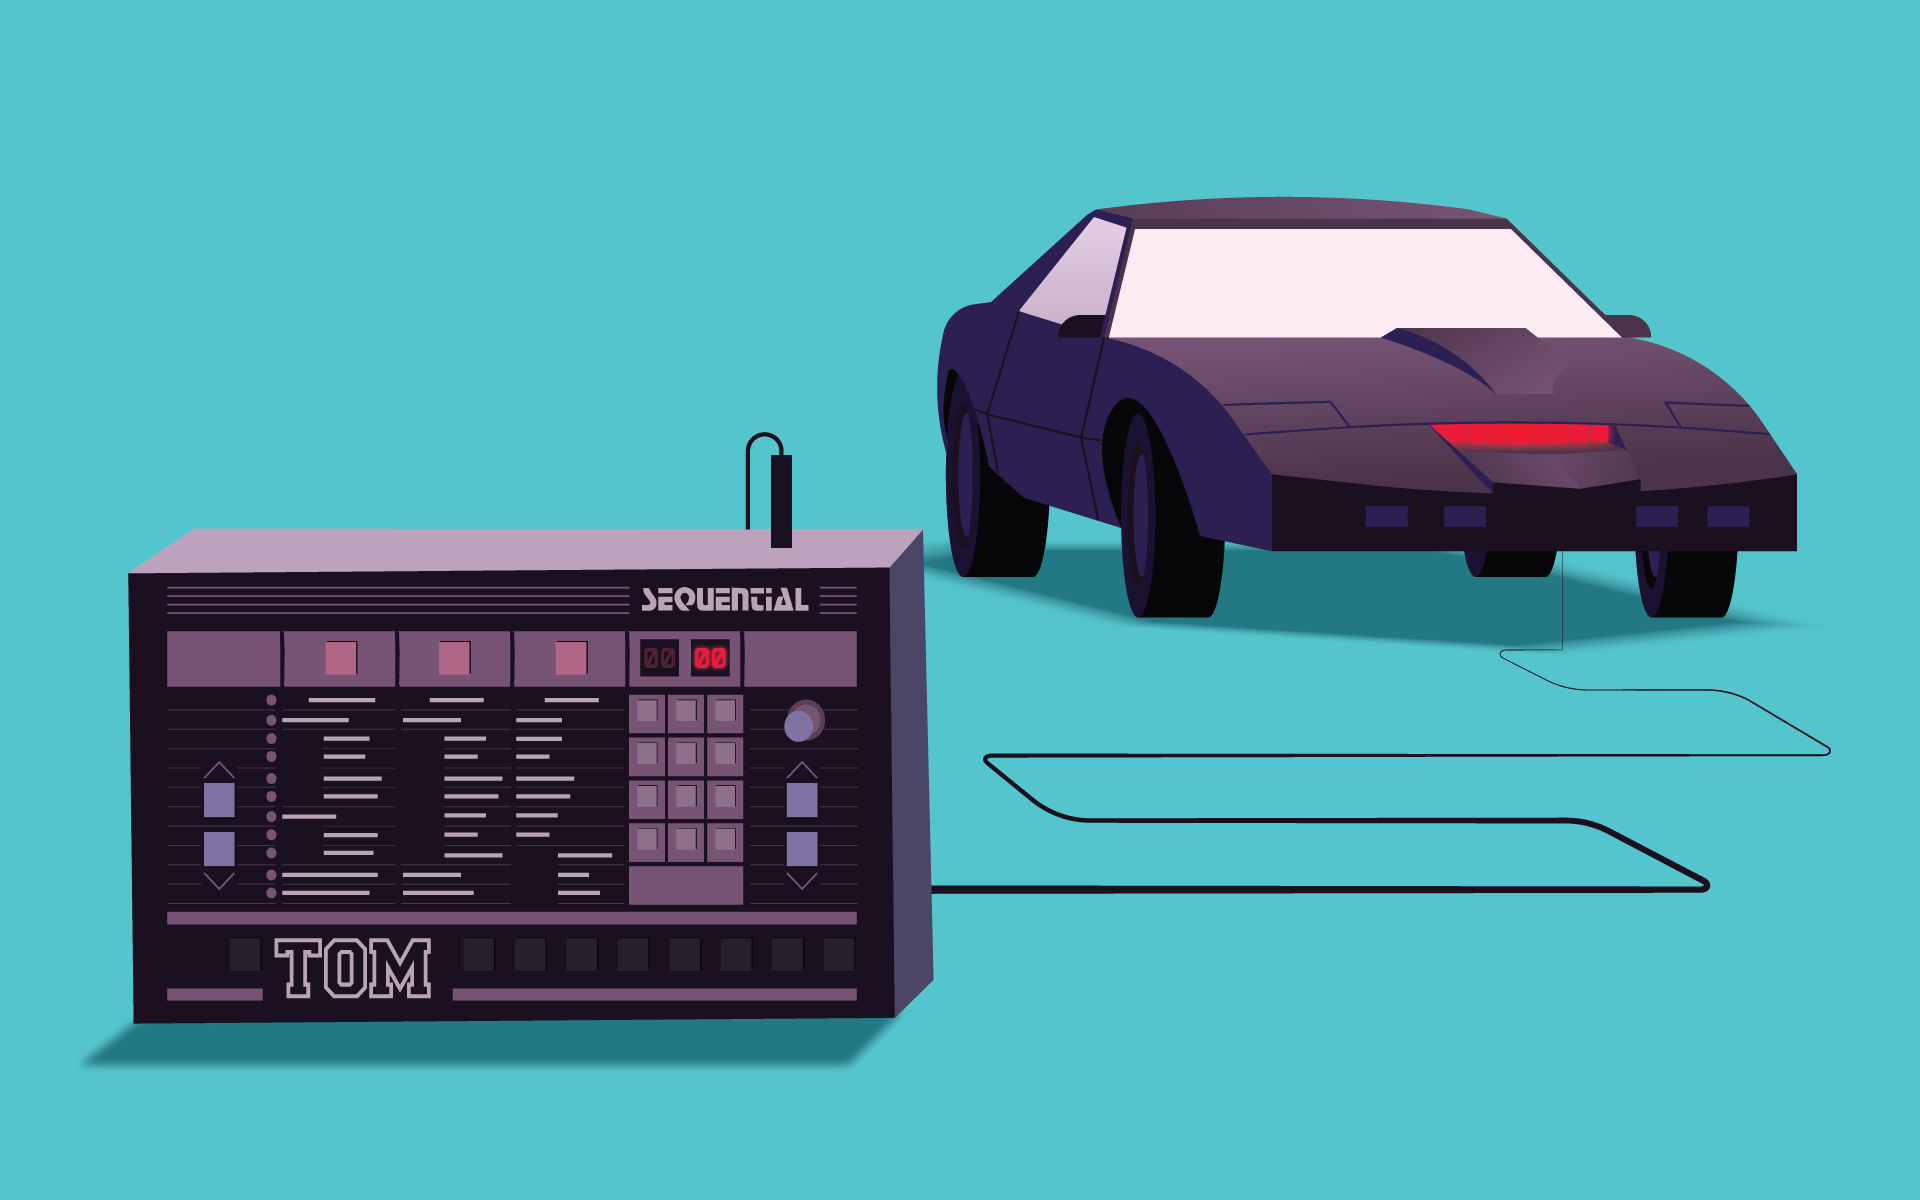 Sequential TOM Drum Machine (and Knight Rider) and MIDI Implementation